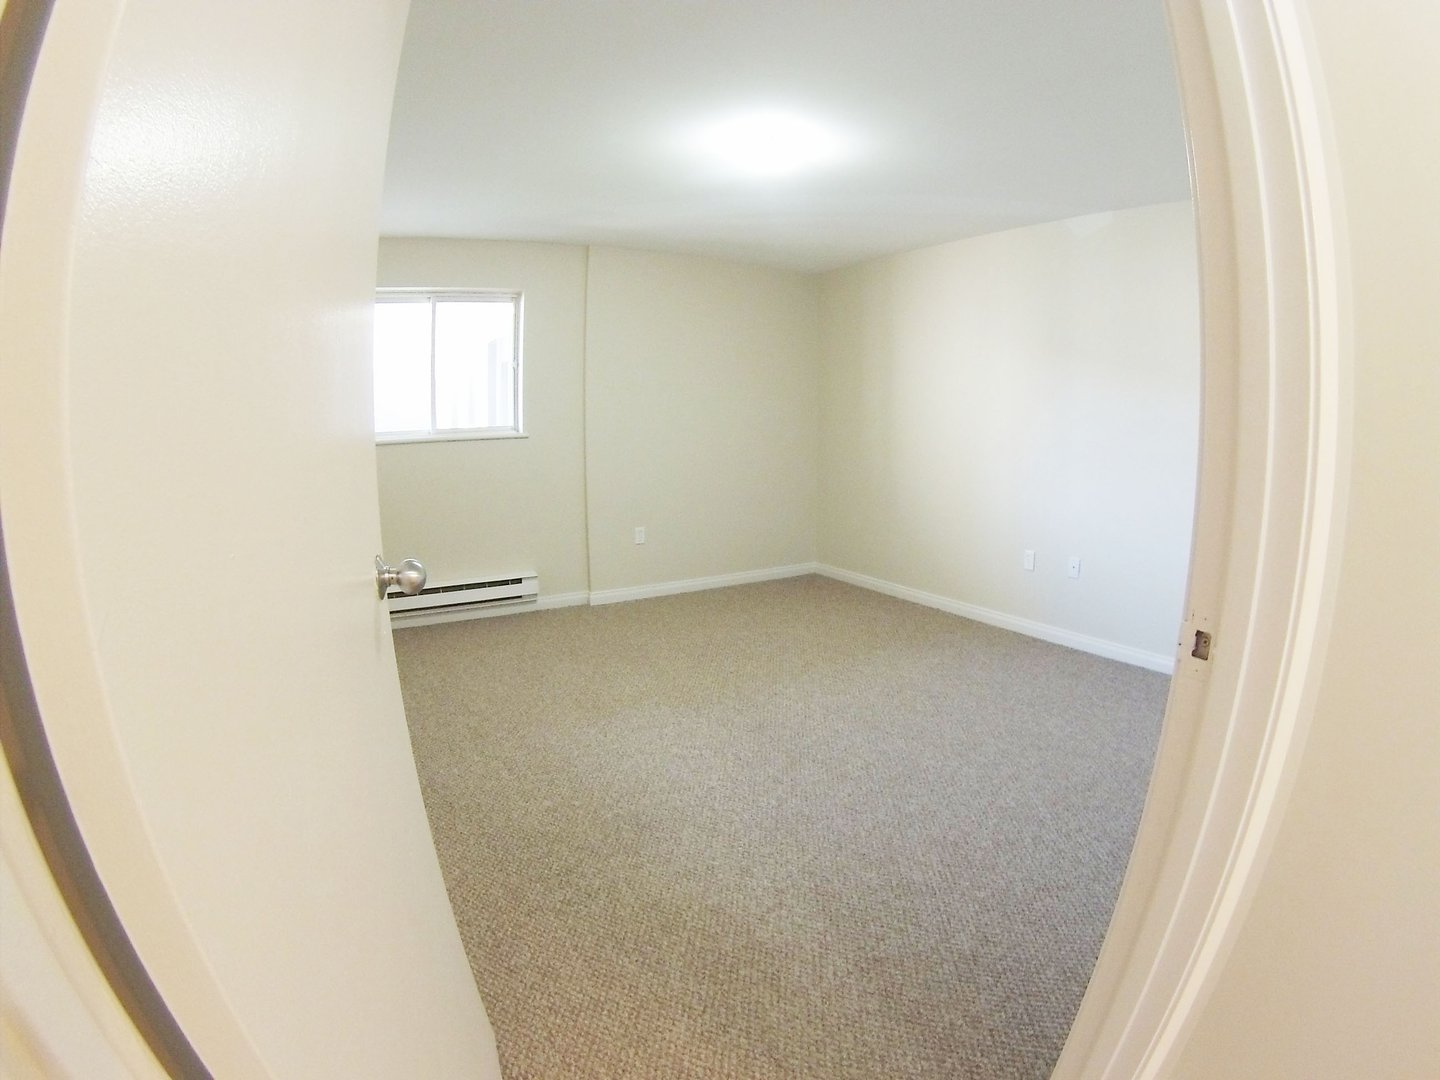 Apartment for rent at 96 Highfield Park Drive B, Dartmouth, NS. This is the empty room with natural light and carpet.